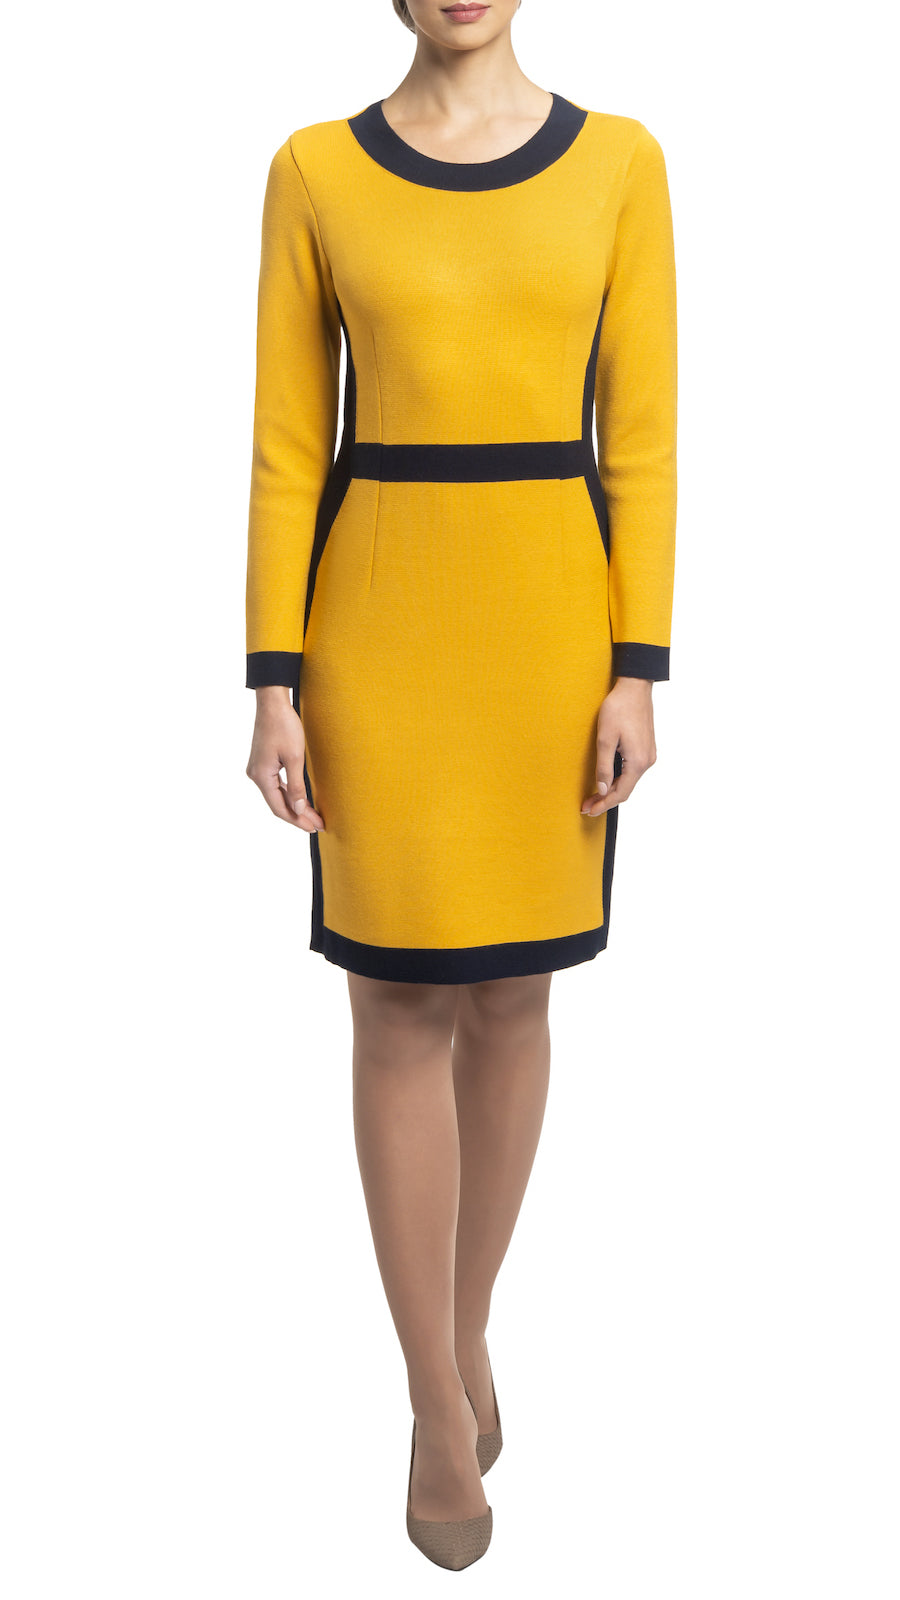 CONTEMPO Zora knitted dress, Gold-Navy